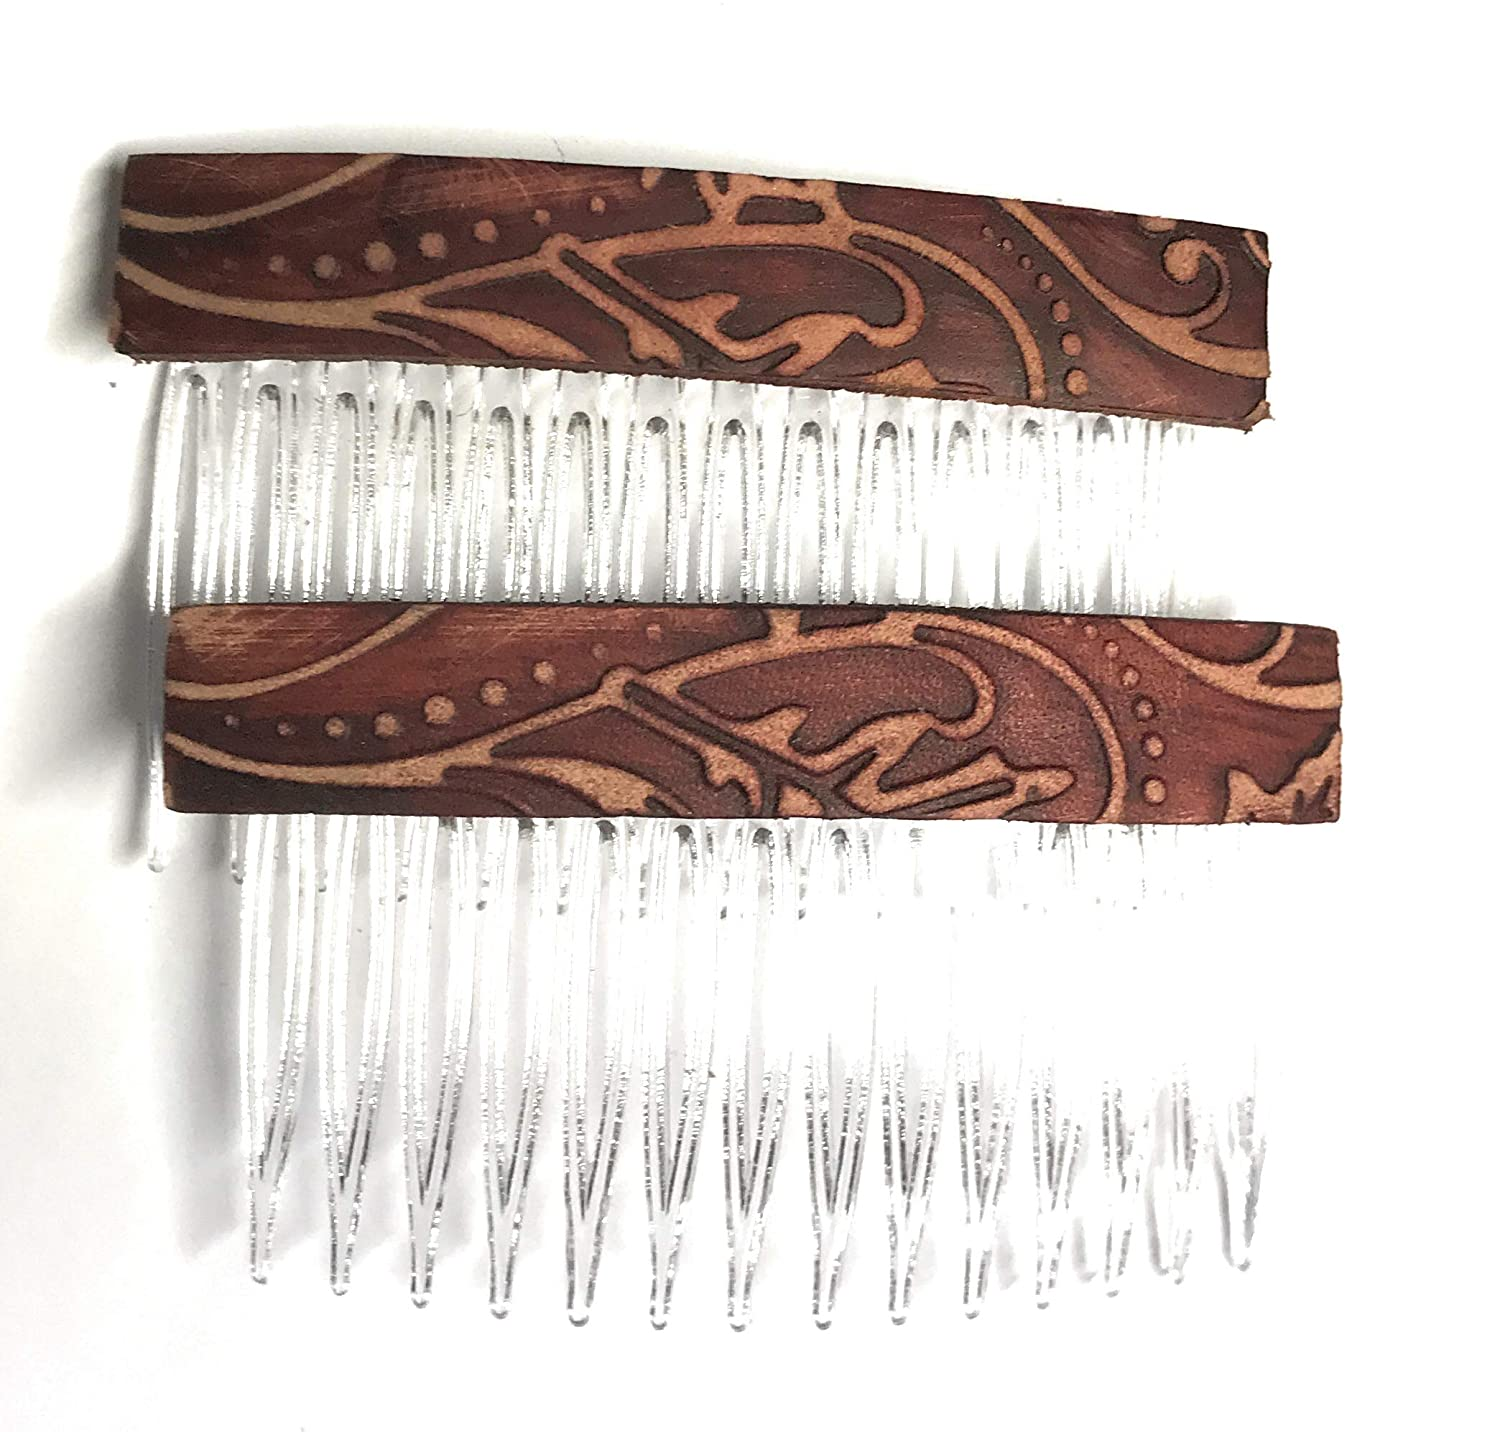 Rustic Boho Brown Vines Leather Hair Comb - Set of 2 Hair Accessory, Gift For Her, Gift Idea for Women with Long Hair